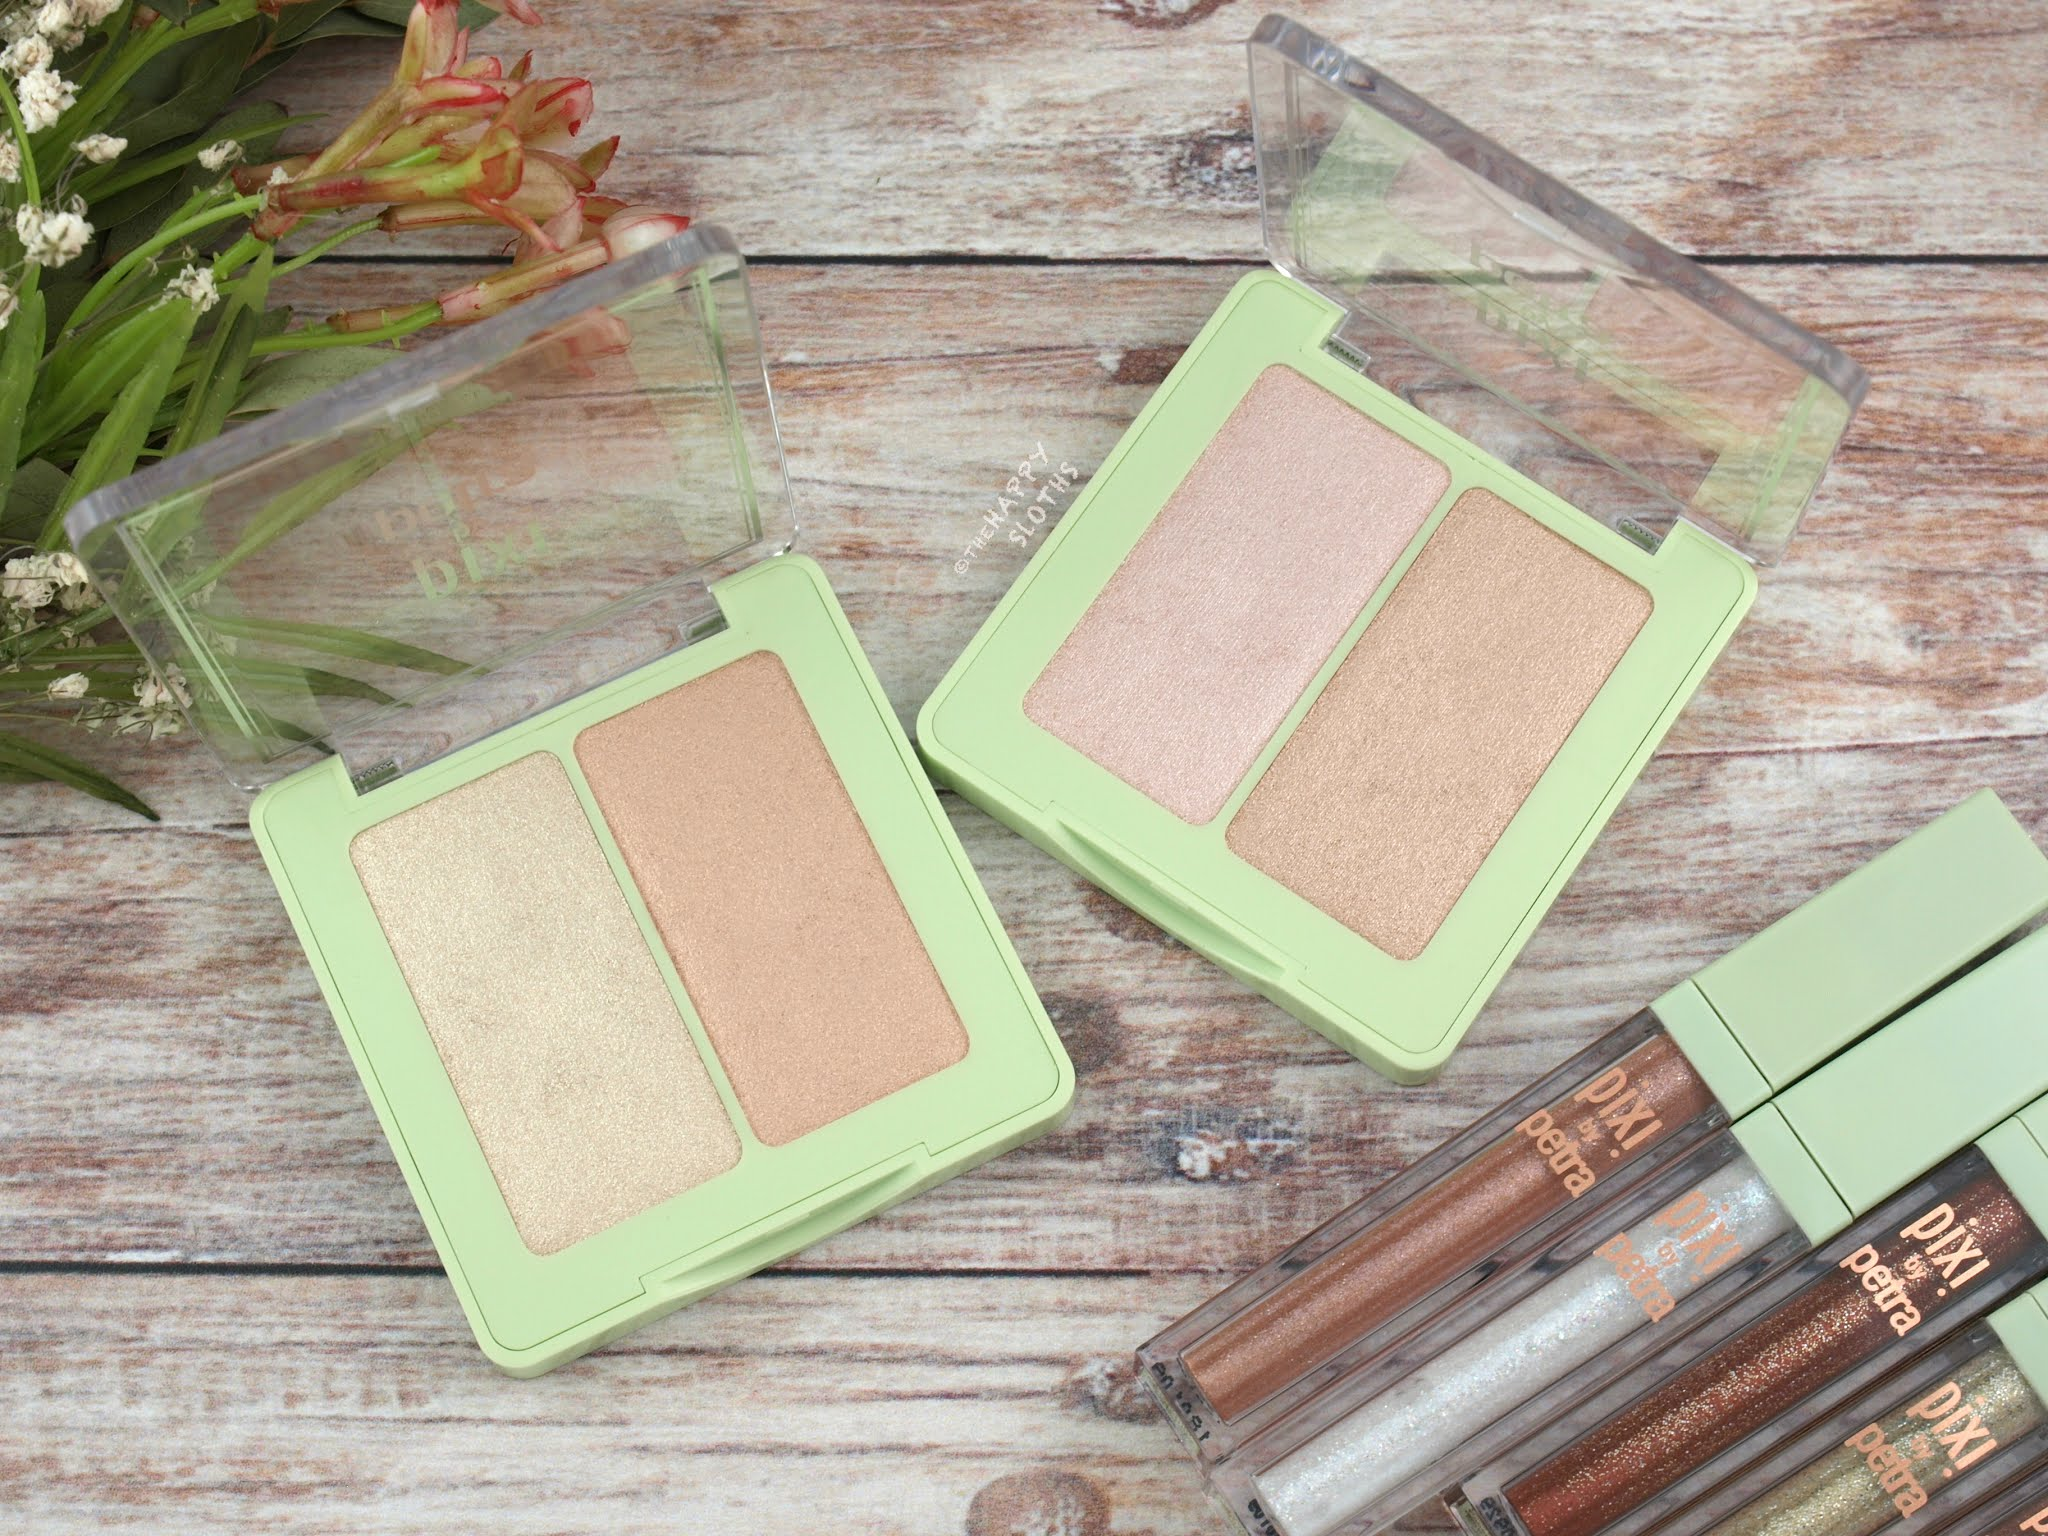 Pixi | Glow-y Gossamer Duo: Review and Swatches